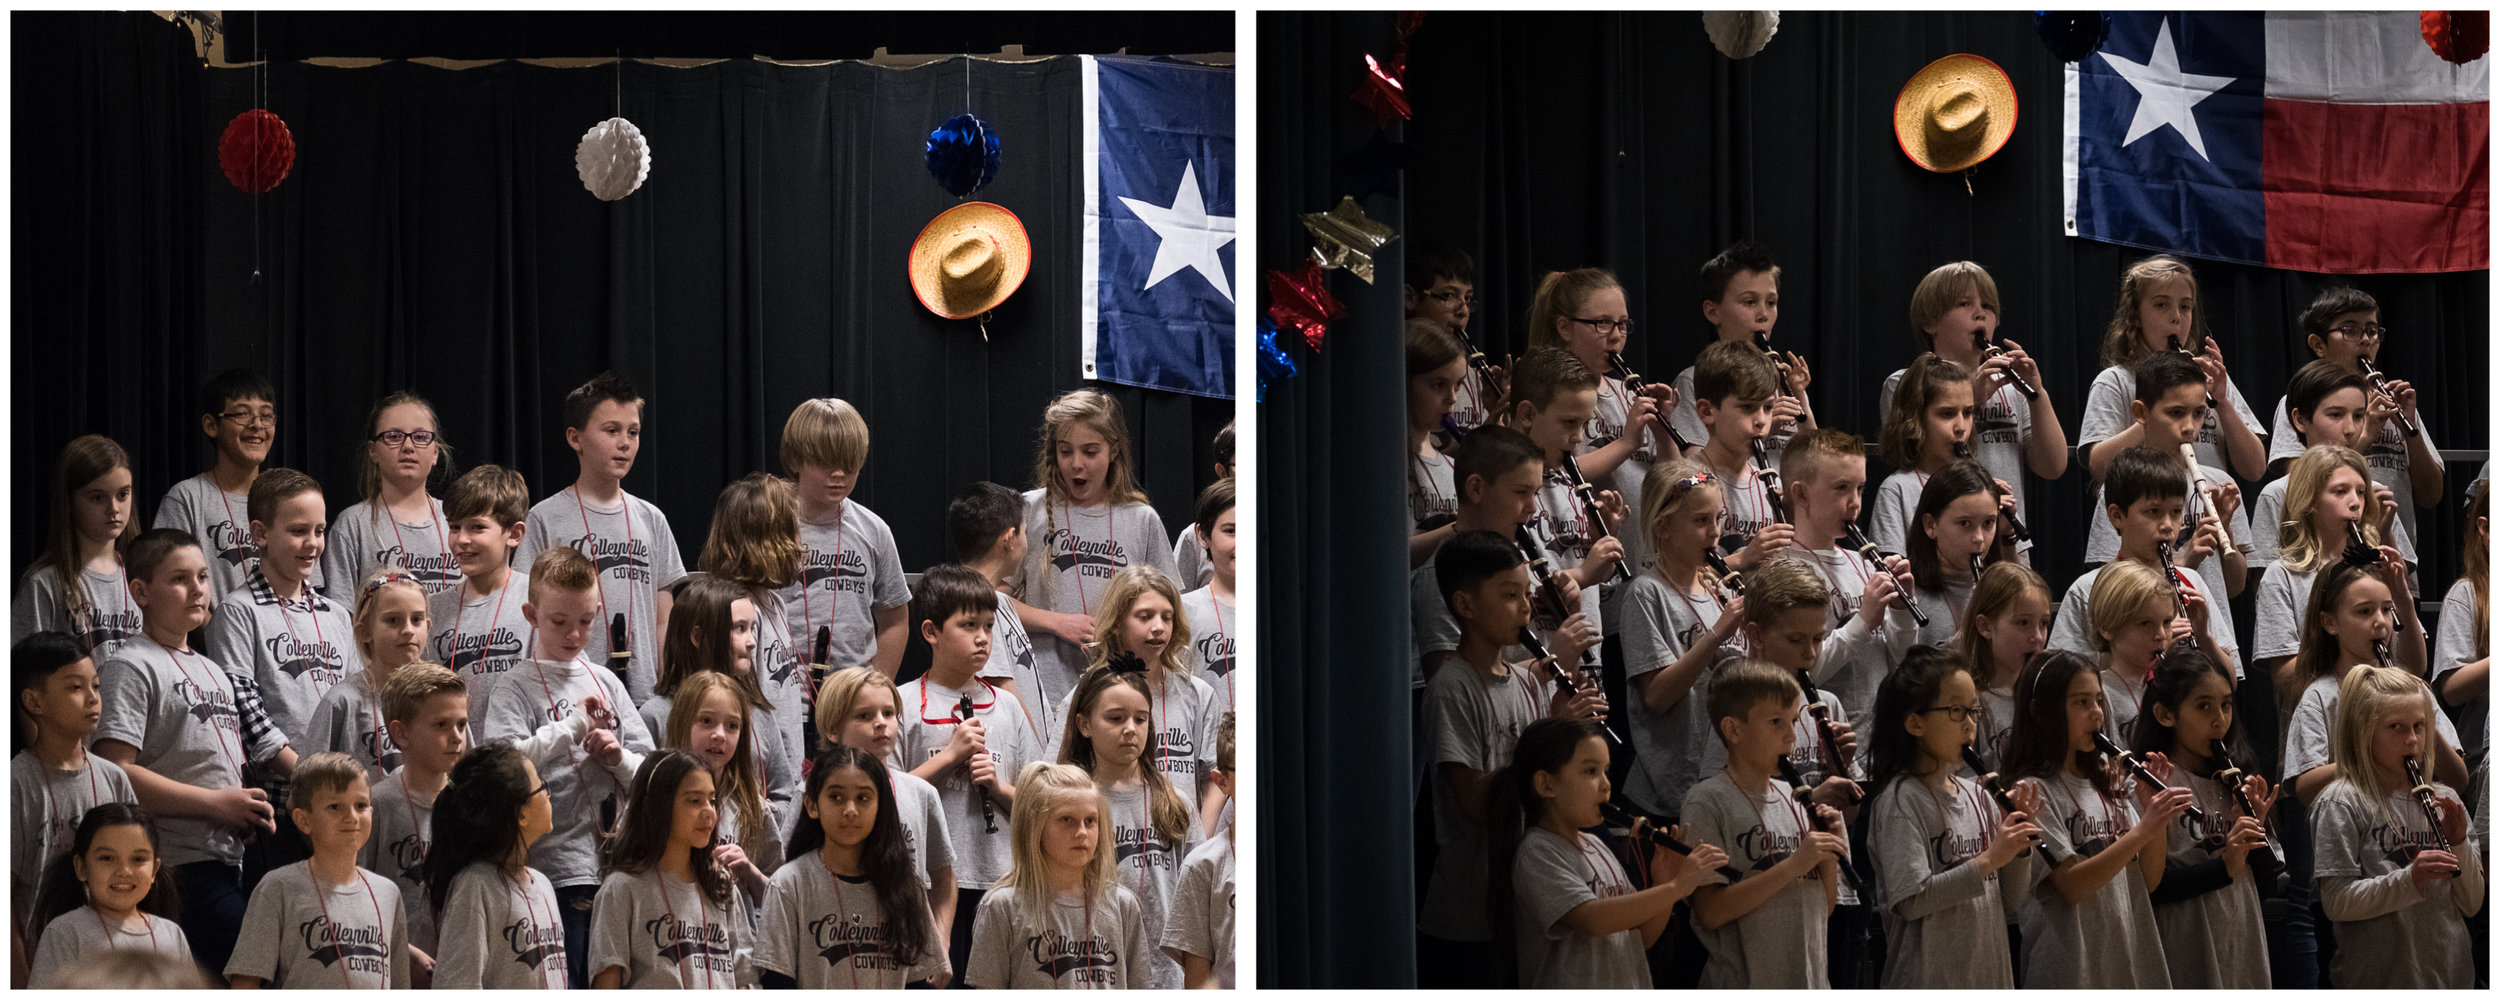 Michael fake-played his way through the 4th grade recorder concert.